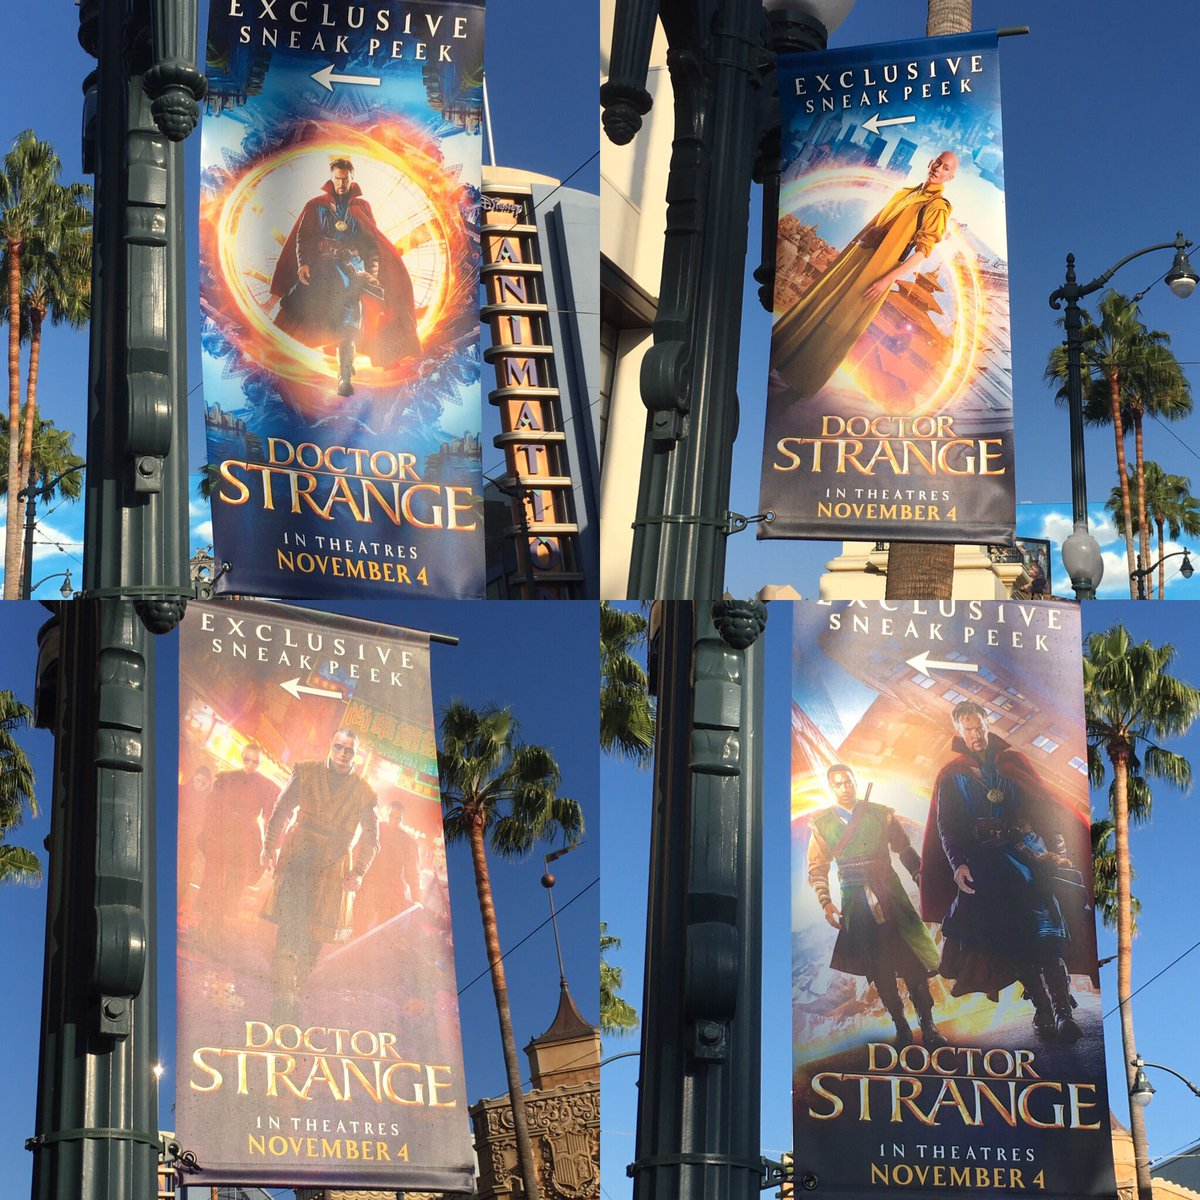 #DoctorStrange banners in #DCA #Marvel #Disneyland https://t.co/WRffaPGBuS